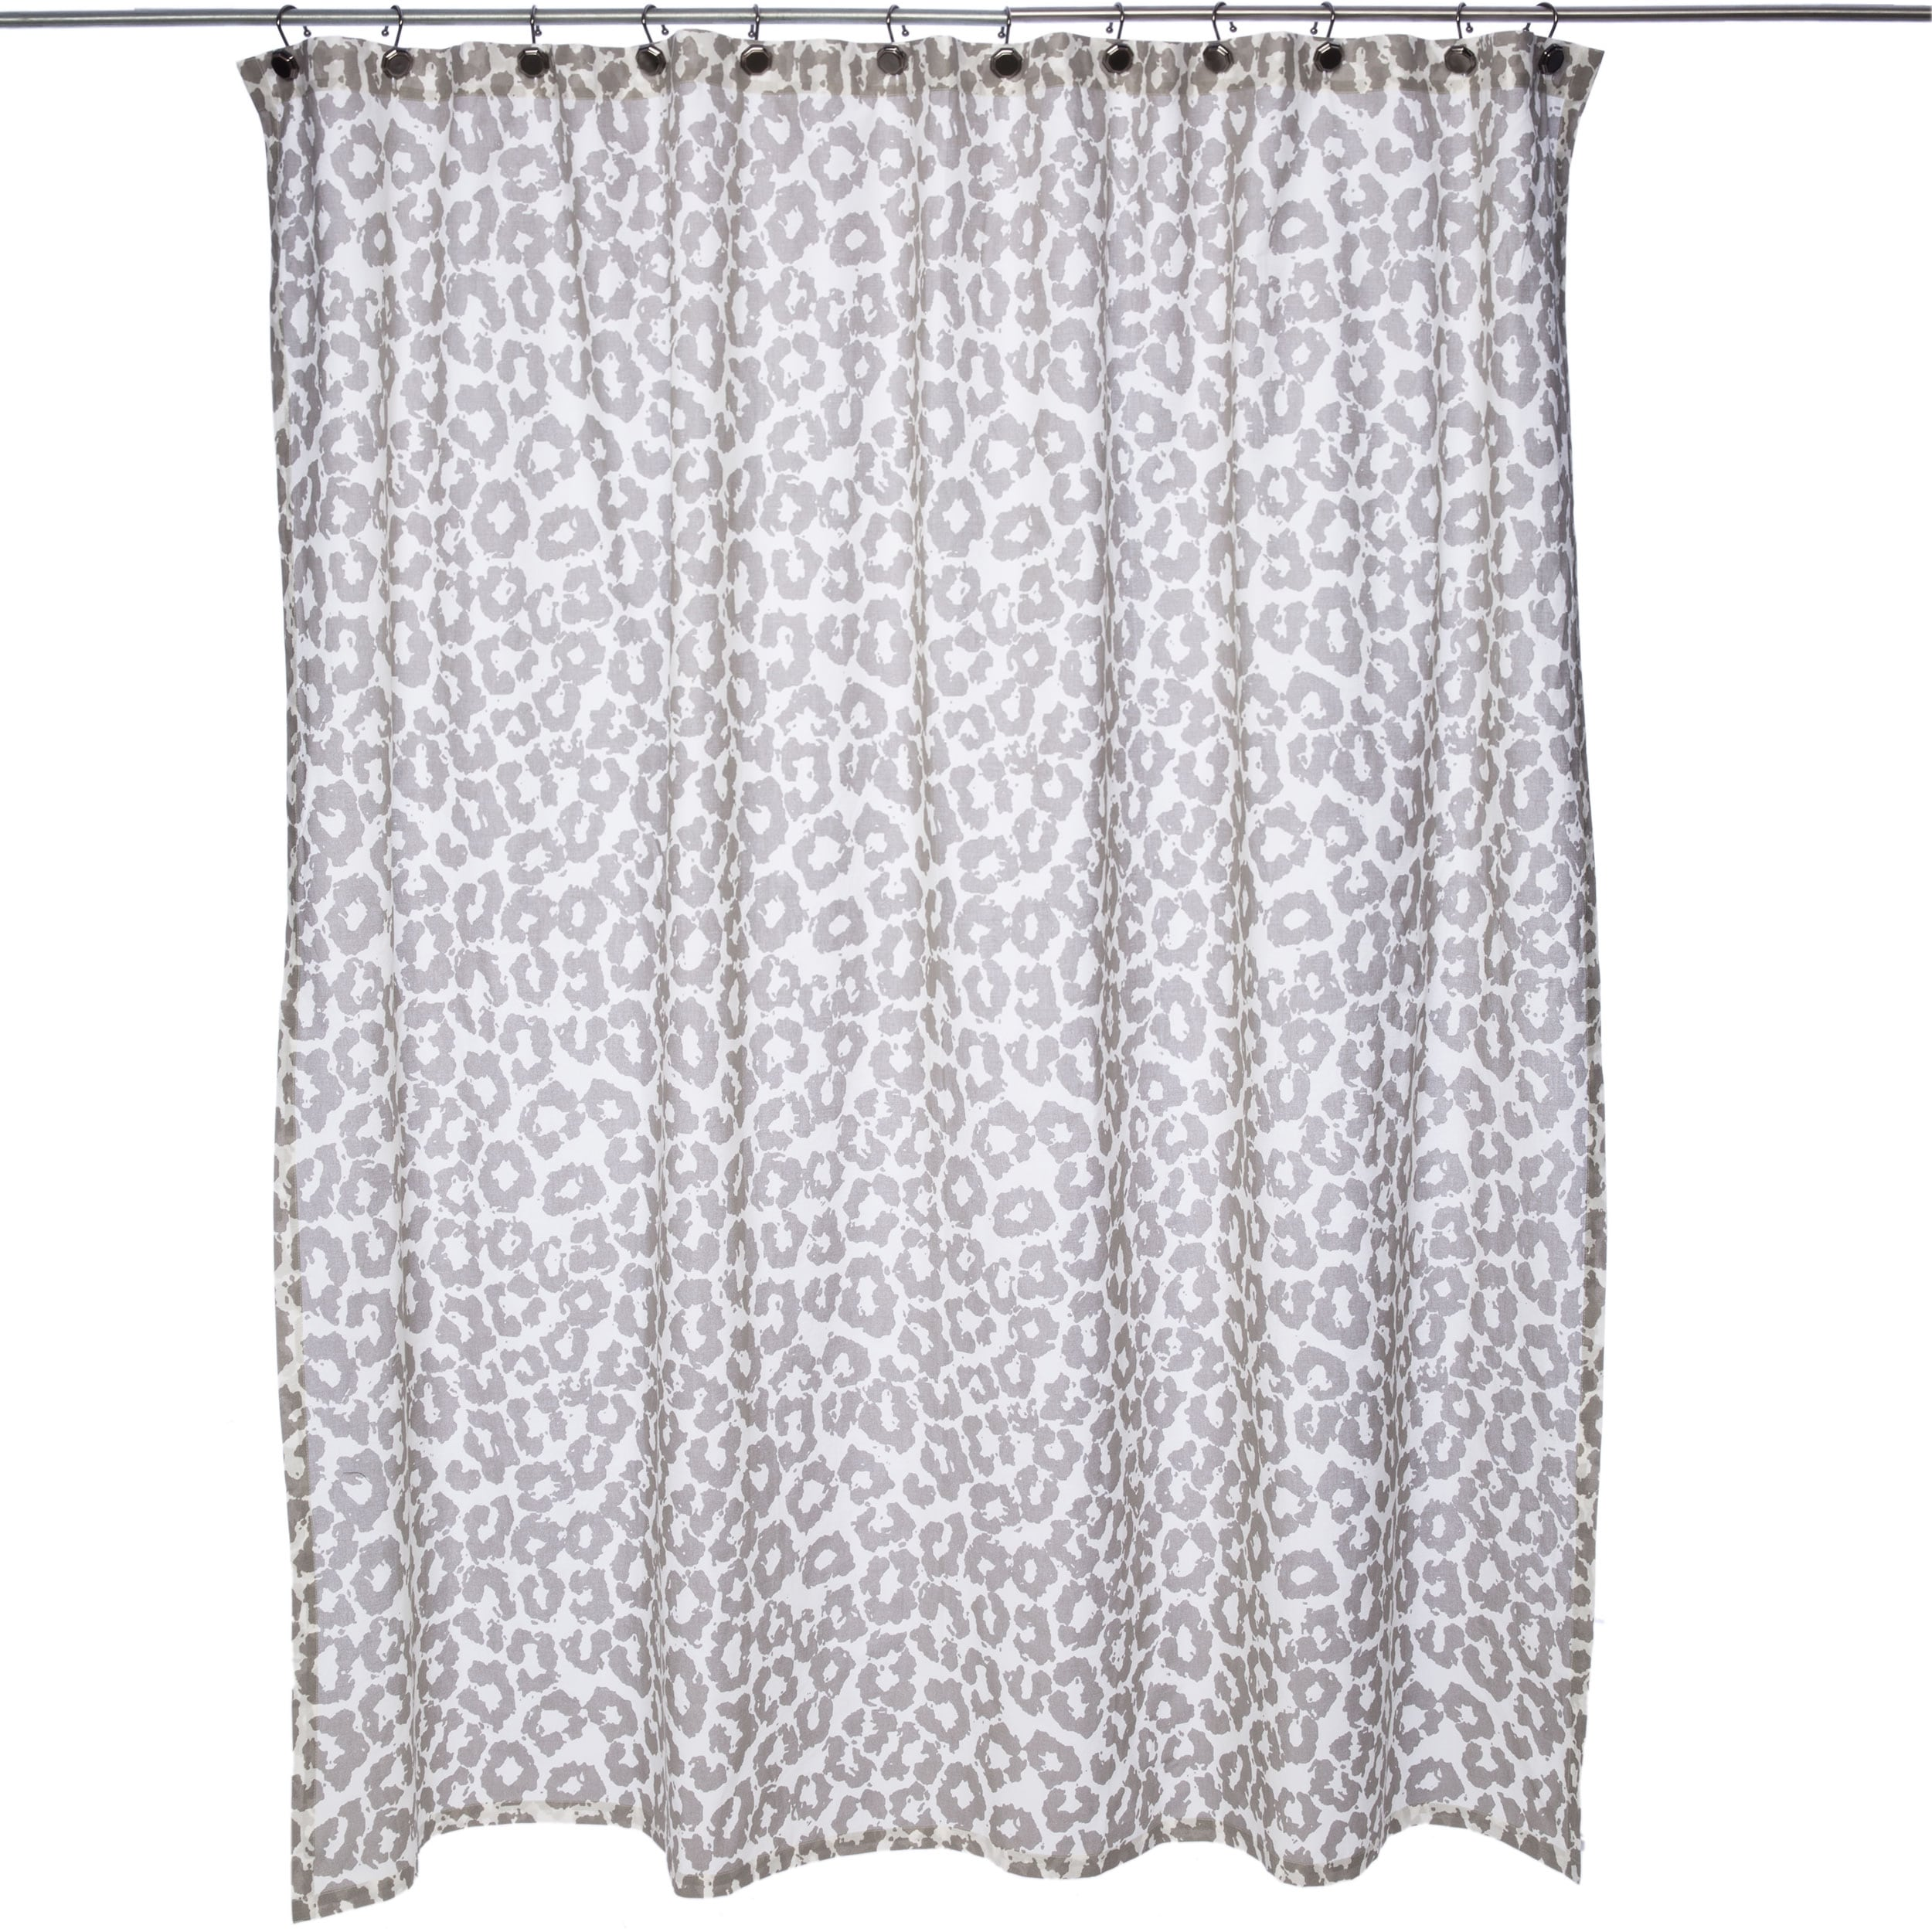 curtain gray wills floral wayfair run reviews shower bed pdx latitude bath